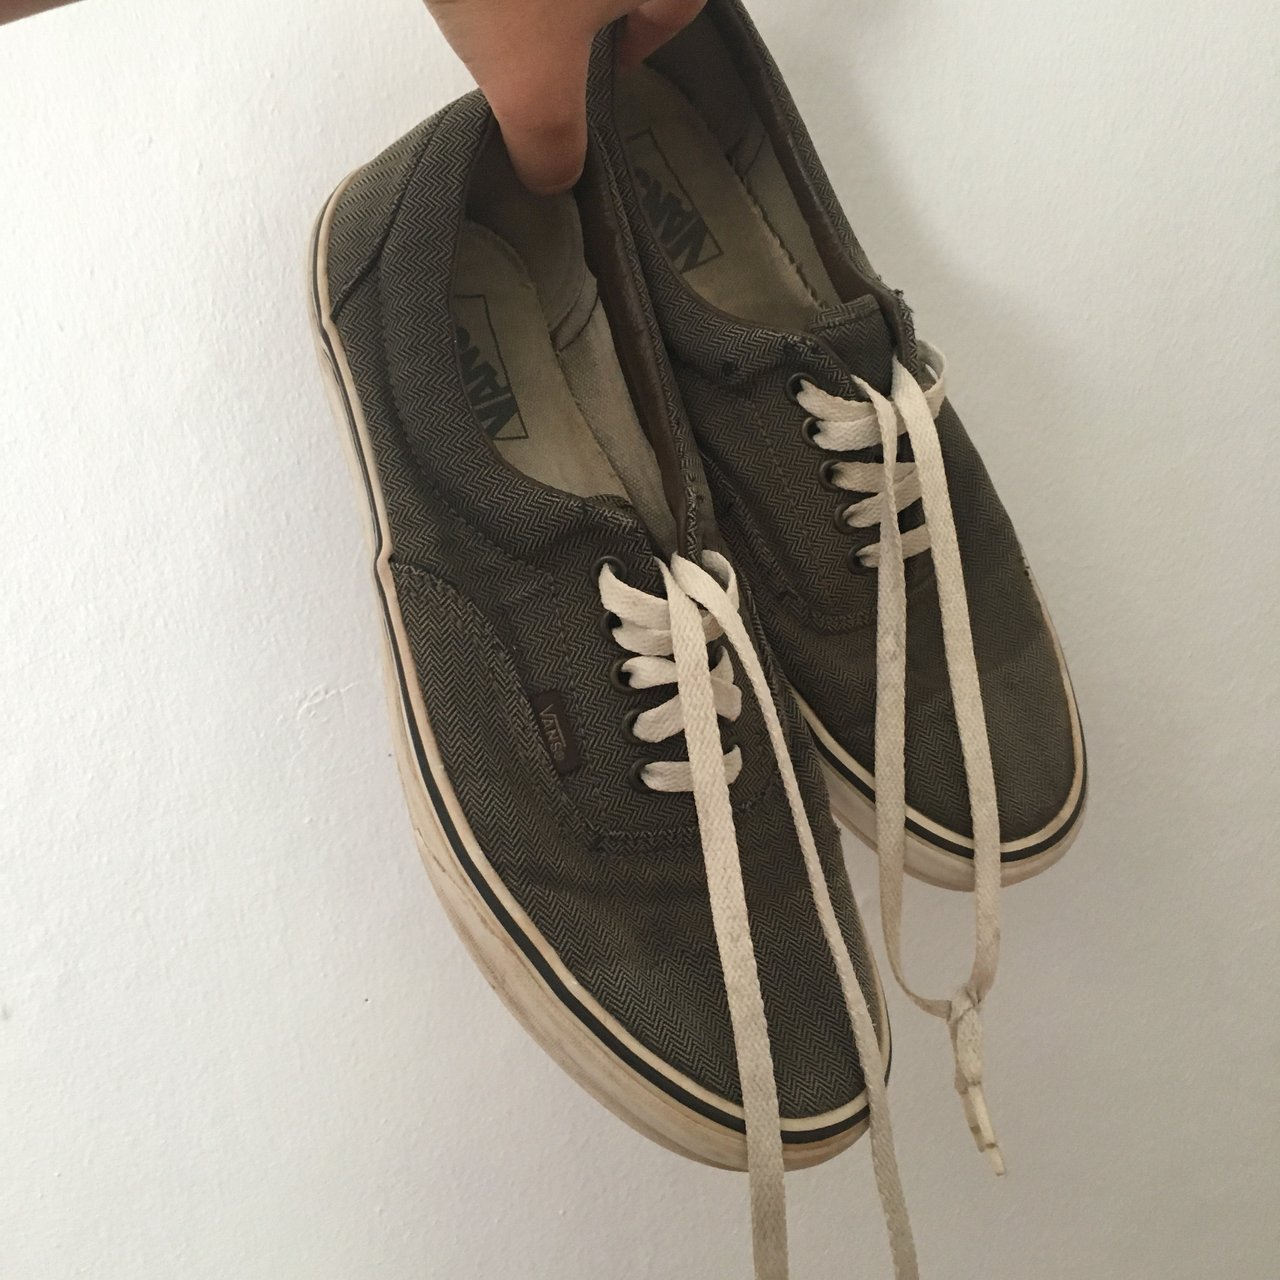 35a9b6cb65 Dark grey chevron vans era pro. Low tops. Good condition. hi - Depop